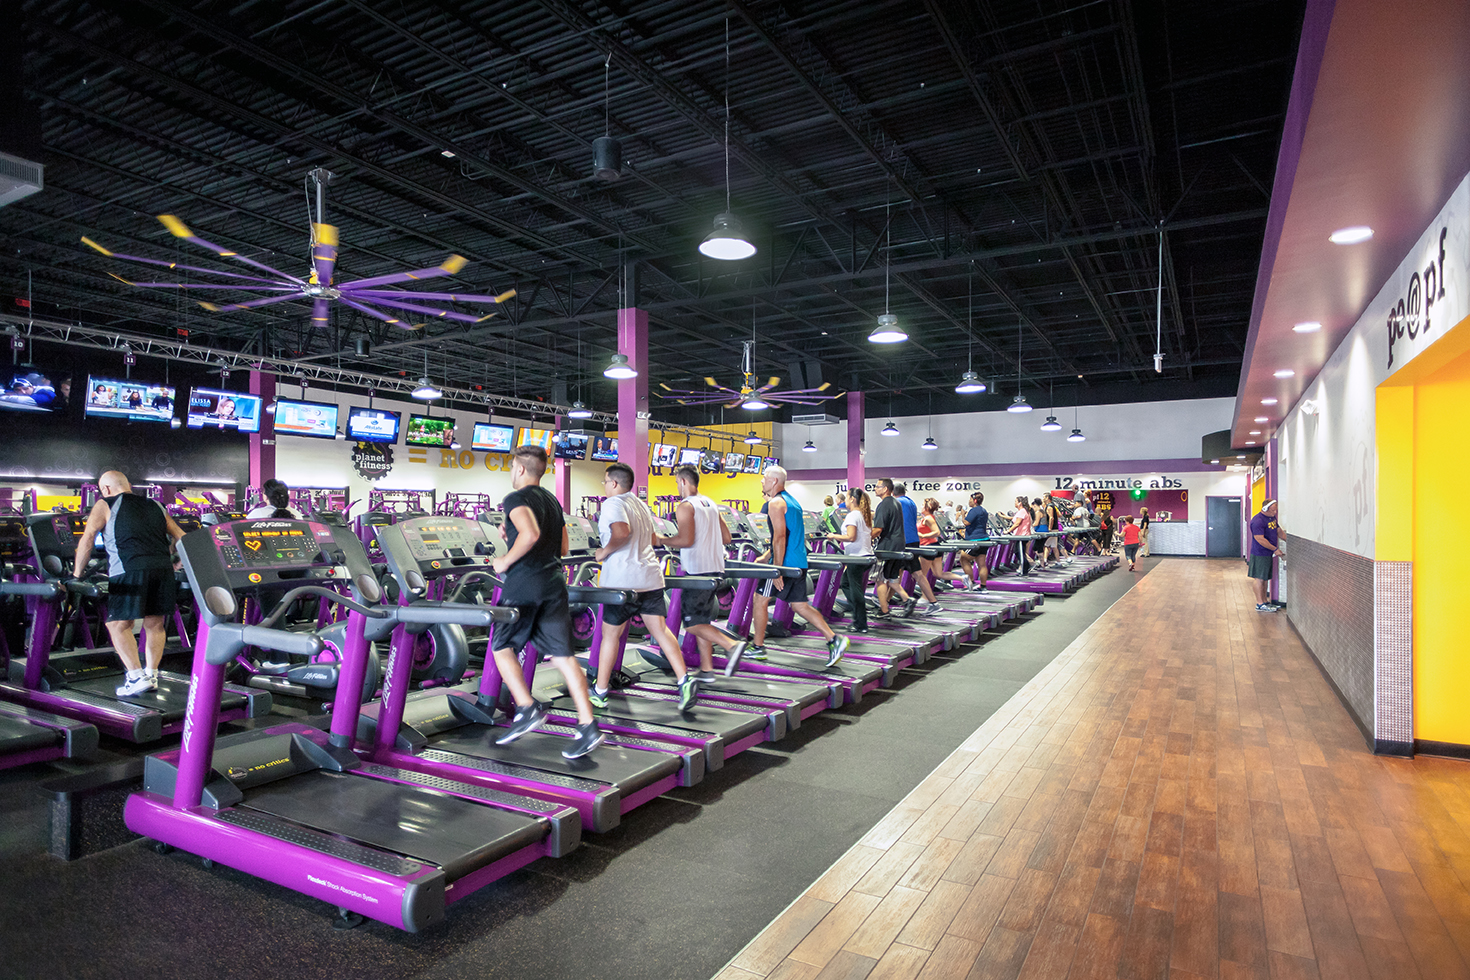 Check out the list of Planet Fitness locations and stop in for a visit on April 4th for the very special one-day spring membership sale, where new members can join any location for just $1 down and $10 a month with absolutely no commitment!